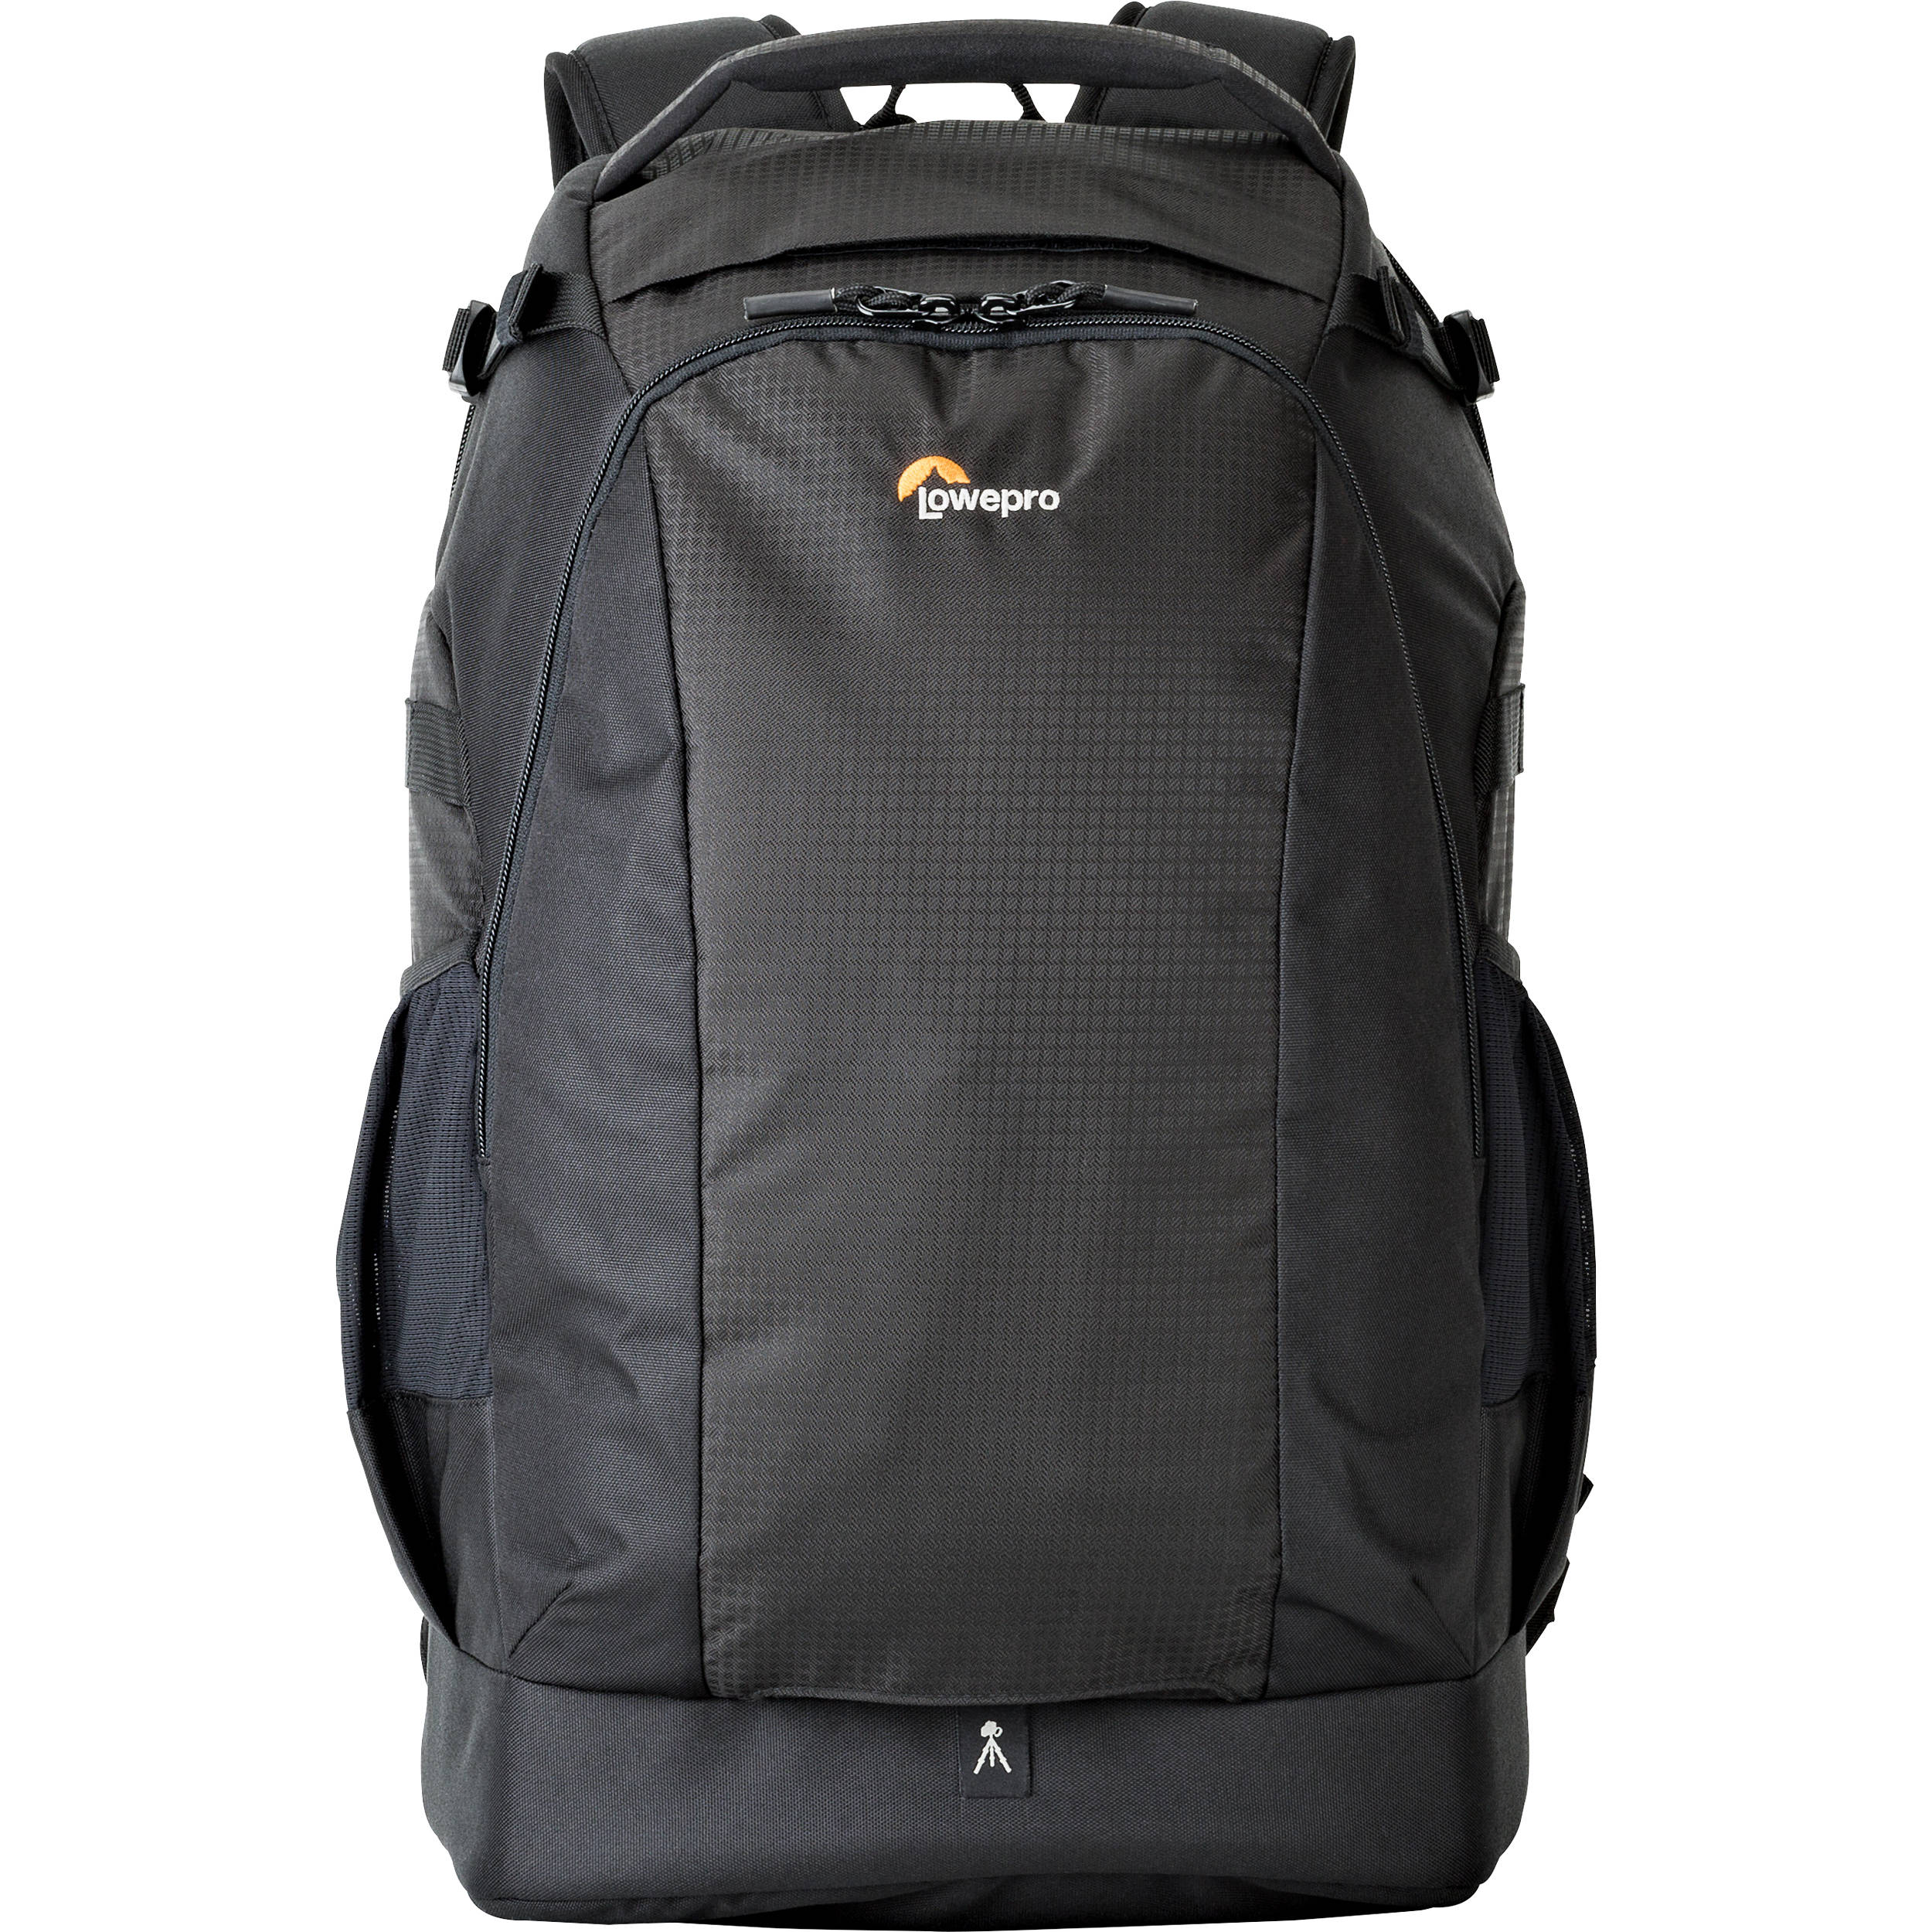 b4cbb5a0806 Lowepro Flipside 500 AW II Camera Backpack (Black) LP37131 B&H